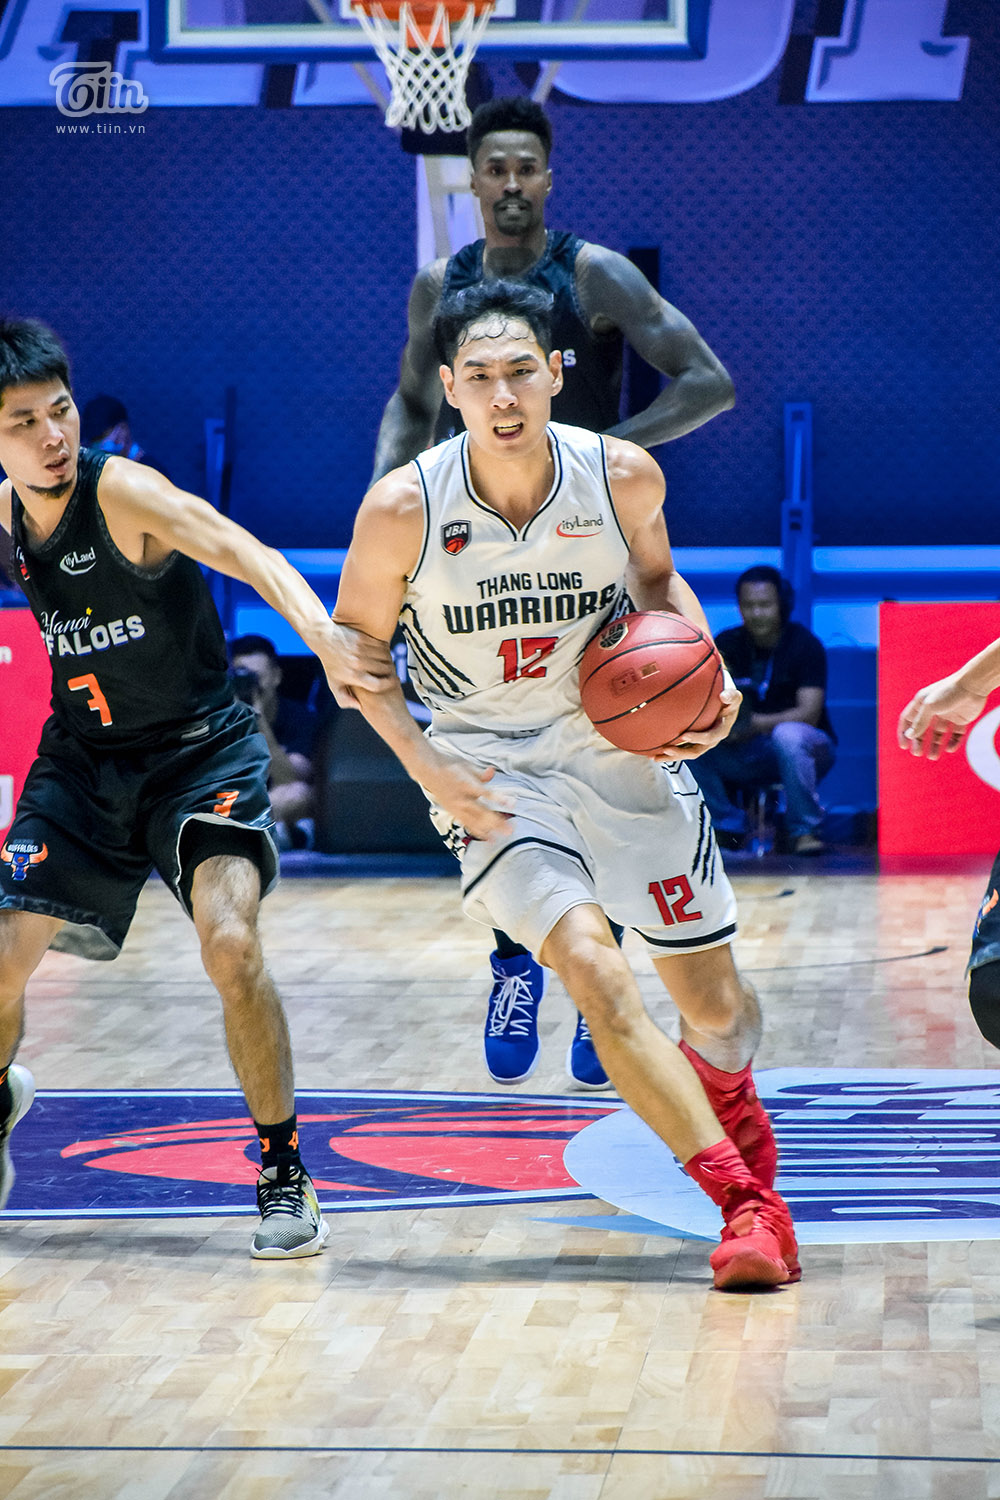 Photo Story: Thang Long Warriors chốt suất vào Finals VBA 2020 10